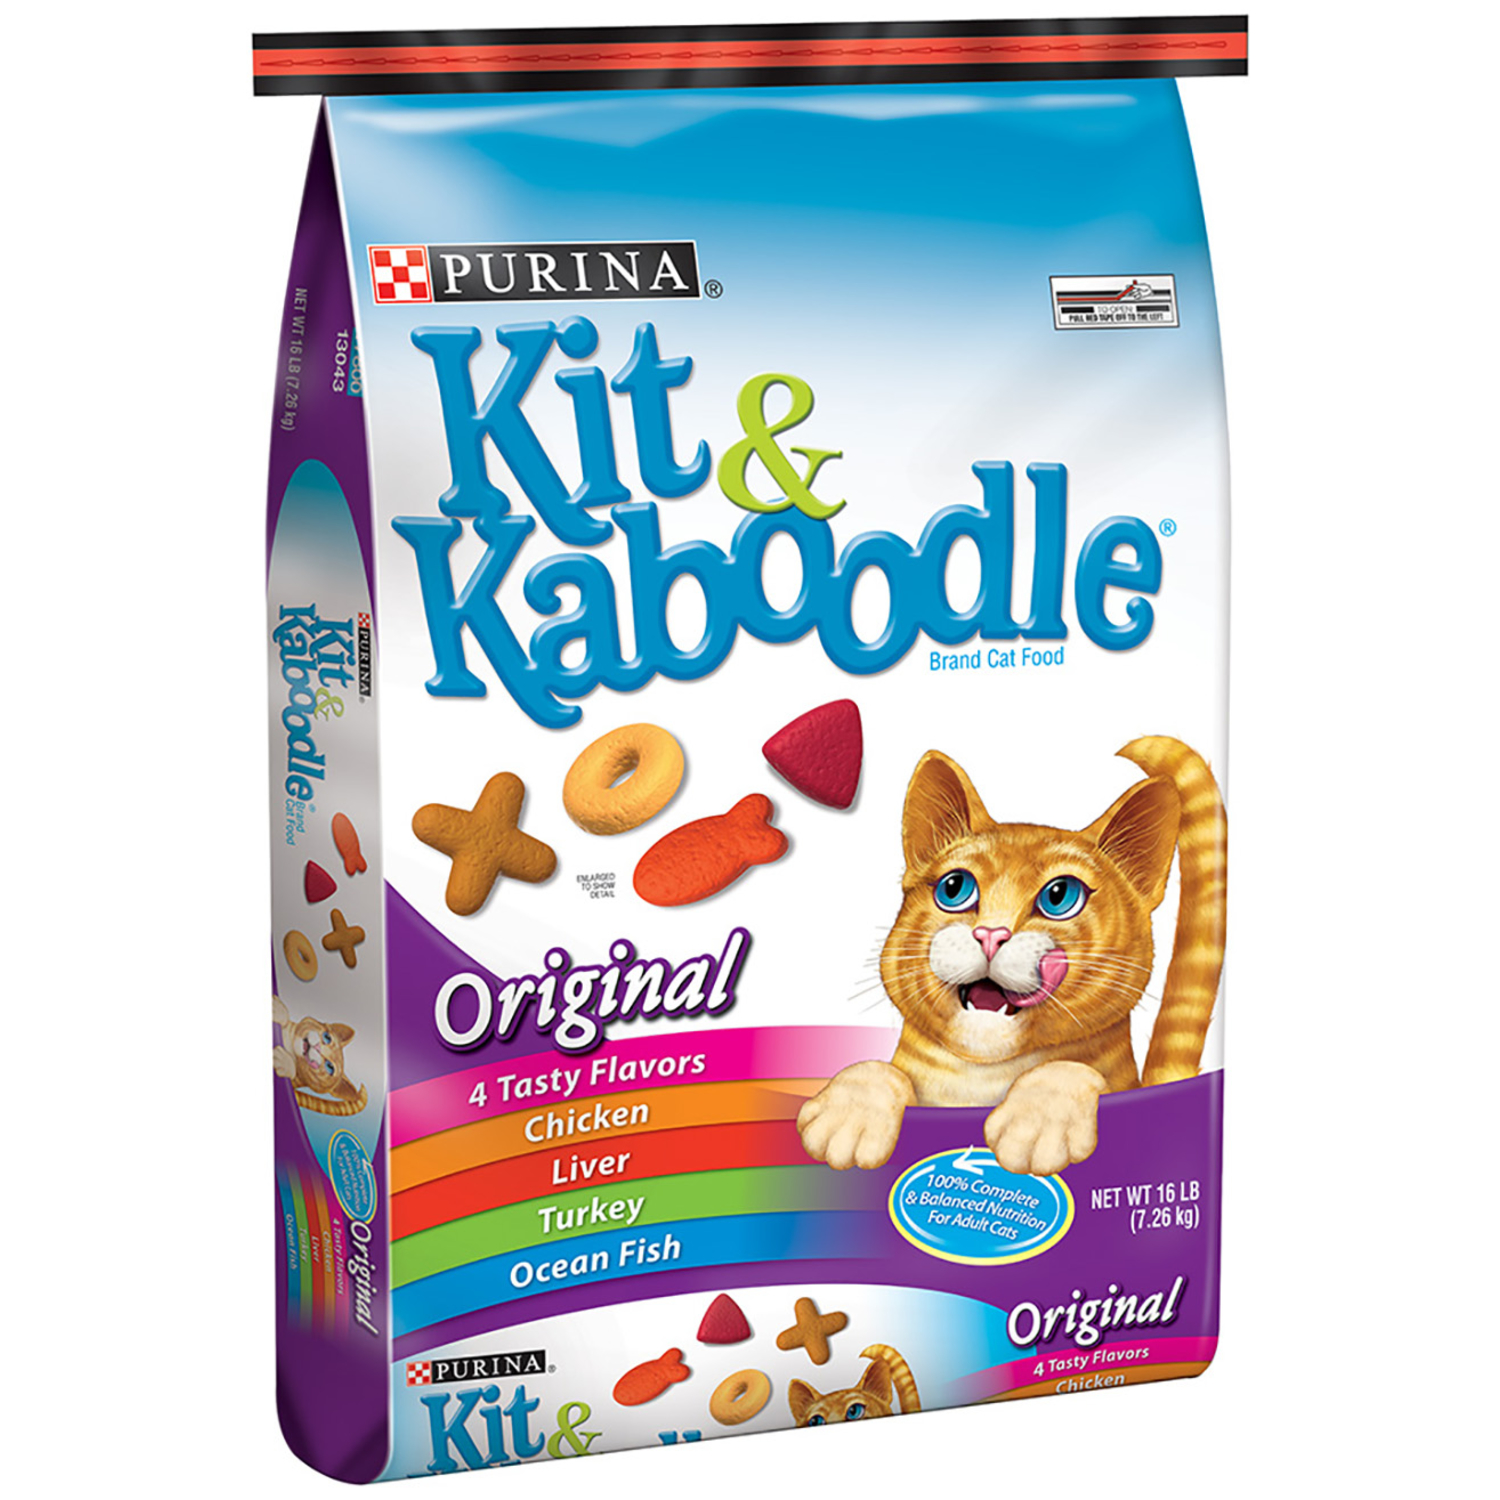 Purina  Kit & Kaboodle  Original Blend of great flavors  Dry  Cat  Food  16 lb.